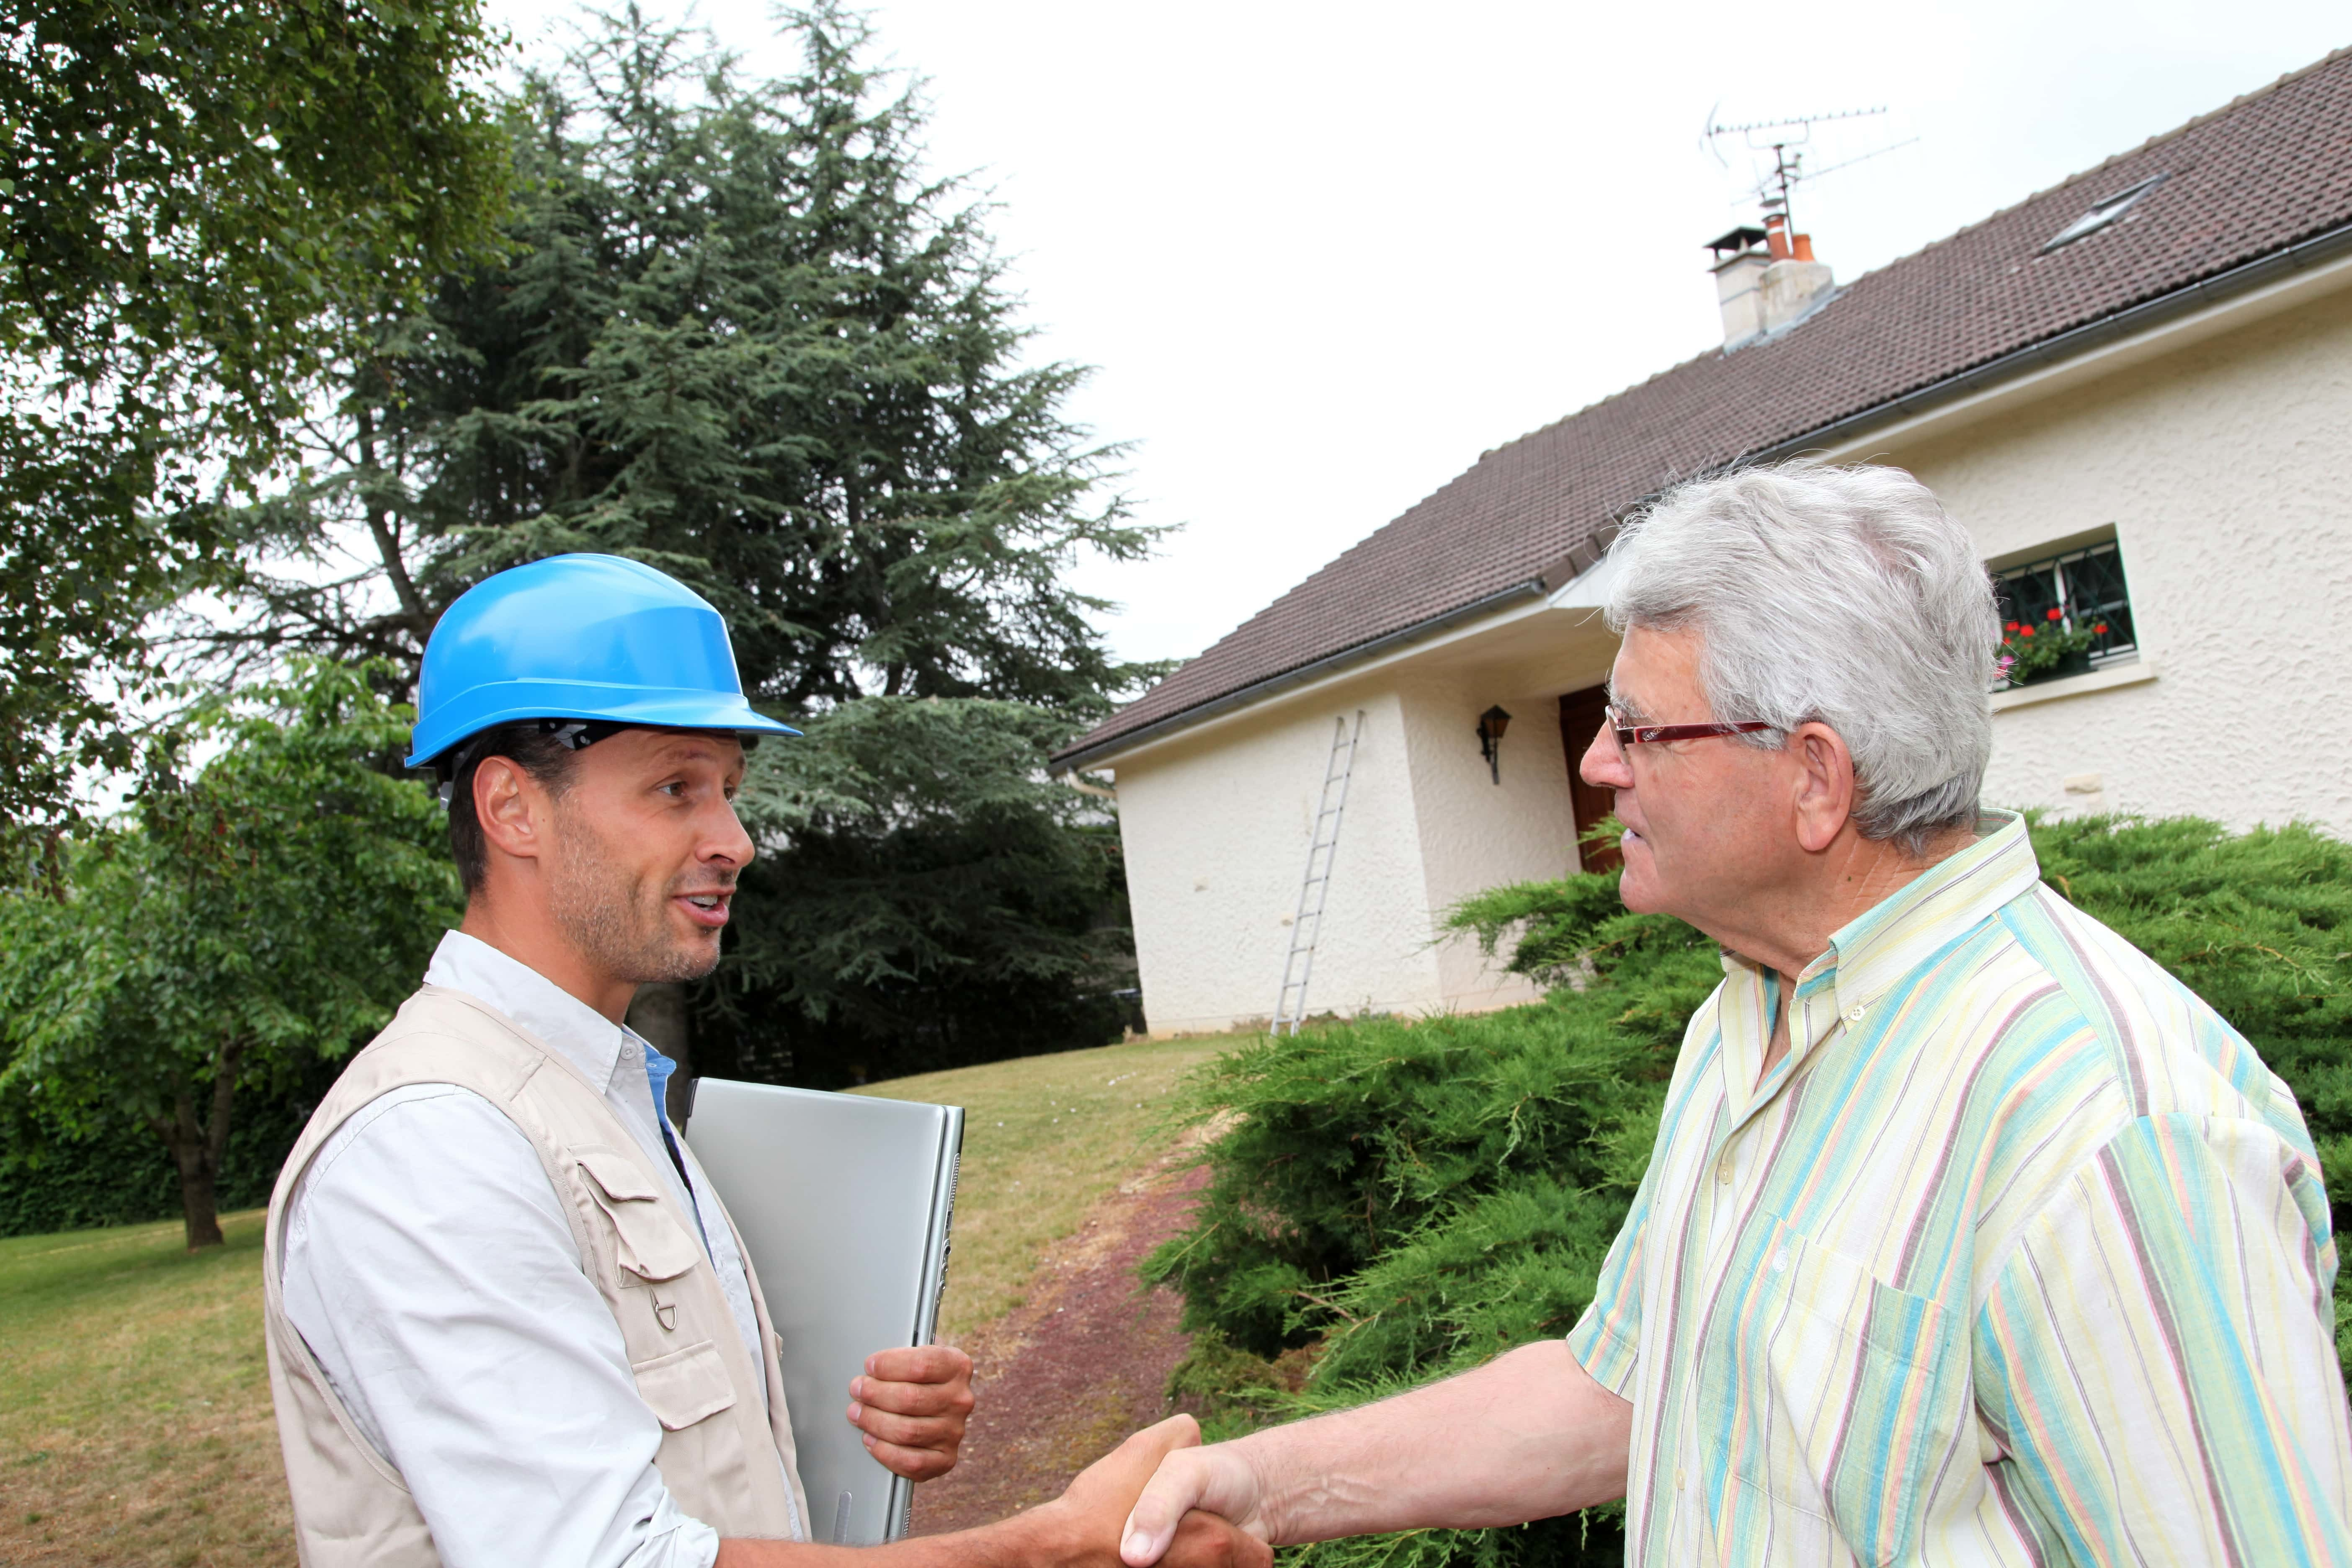 Schober Repair Services | Handyman Services Done Right - Making an agreement to assist in home repairs.